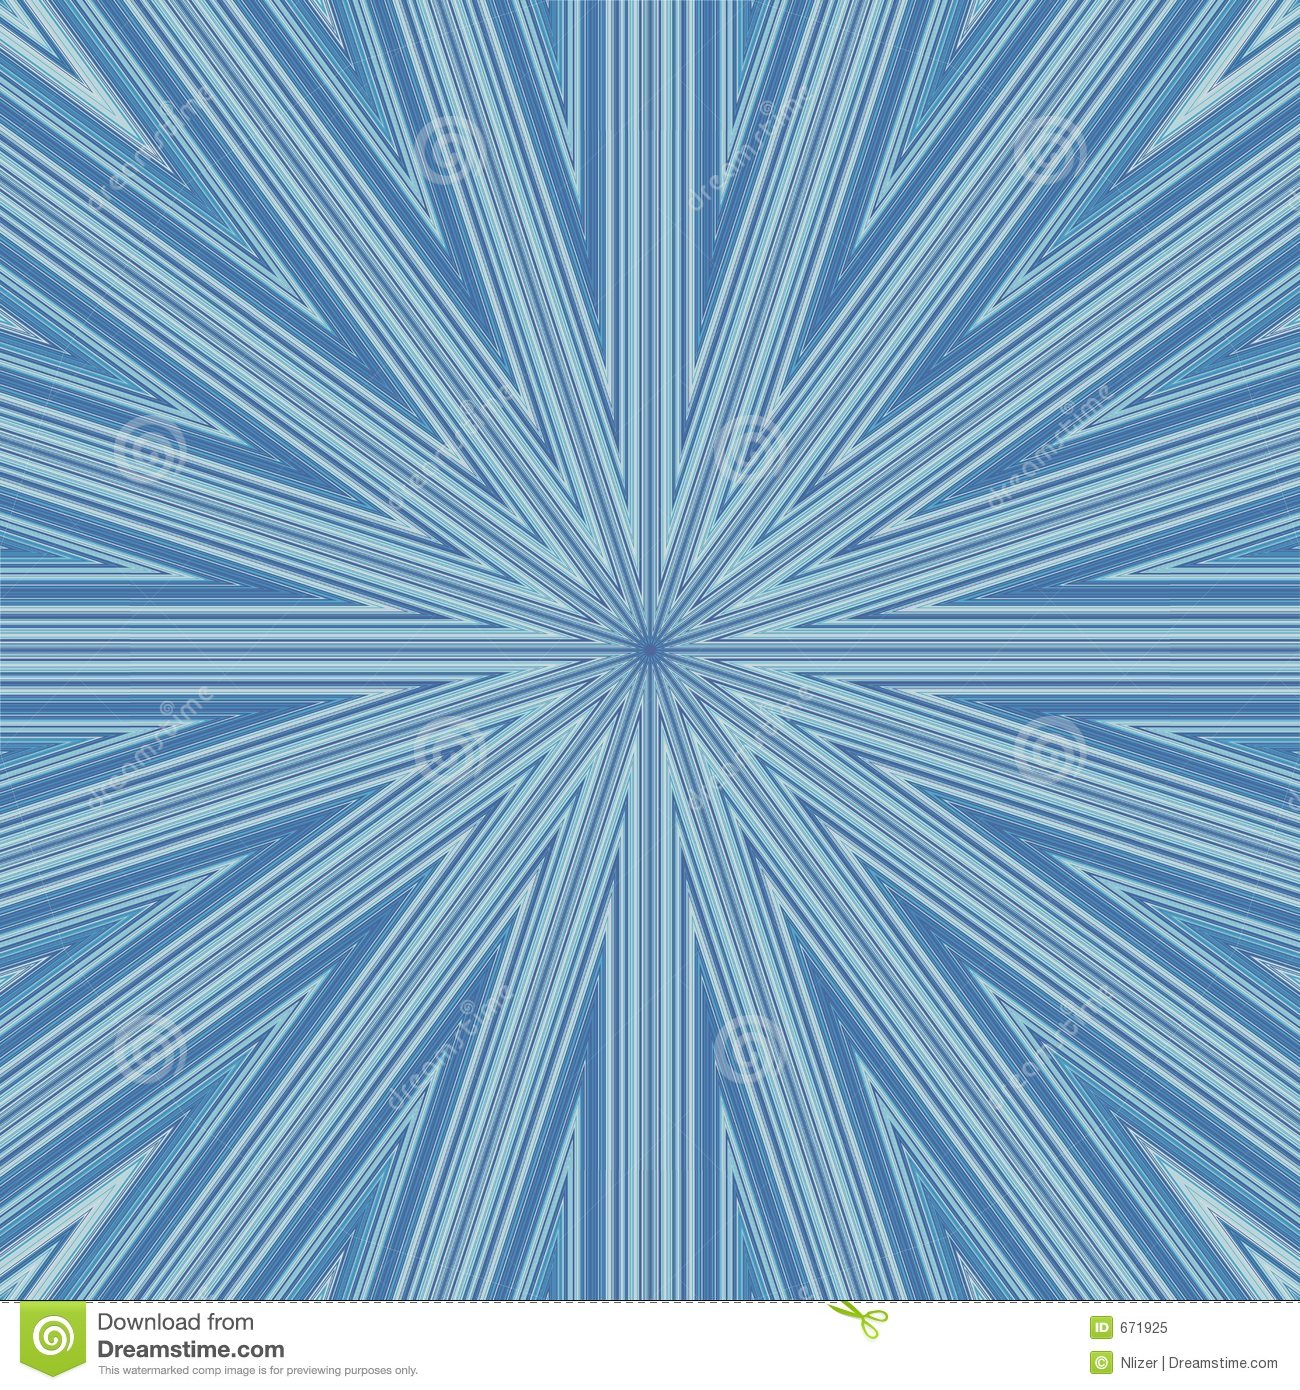 Scrapbook paper as wallpaper - Starburst Cool Lines Background Royalty Free Stock Photo